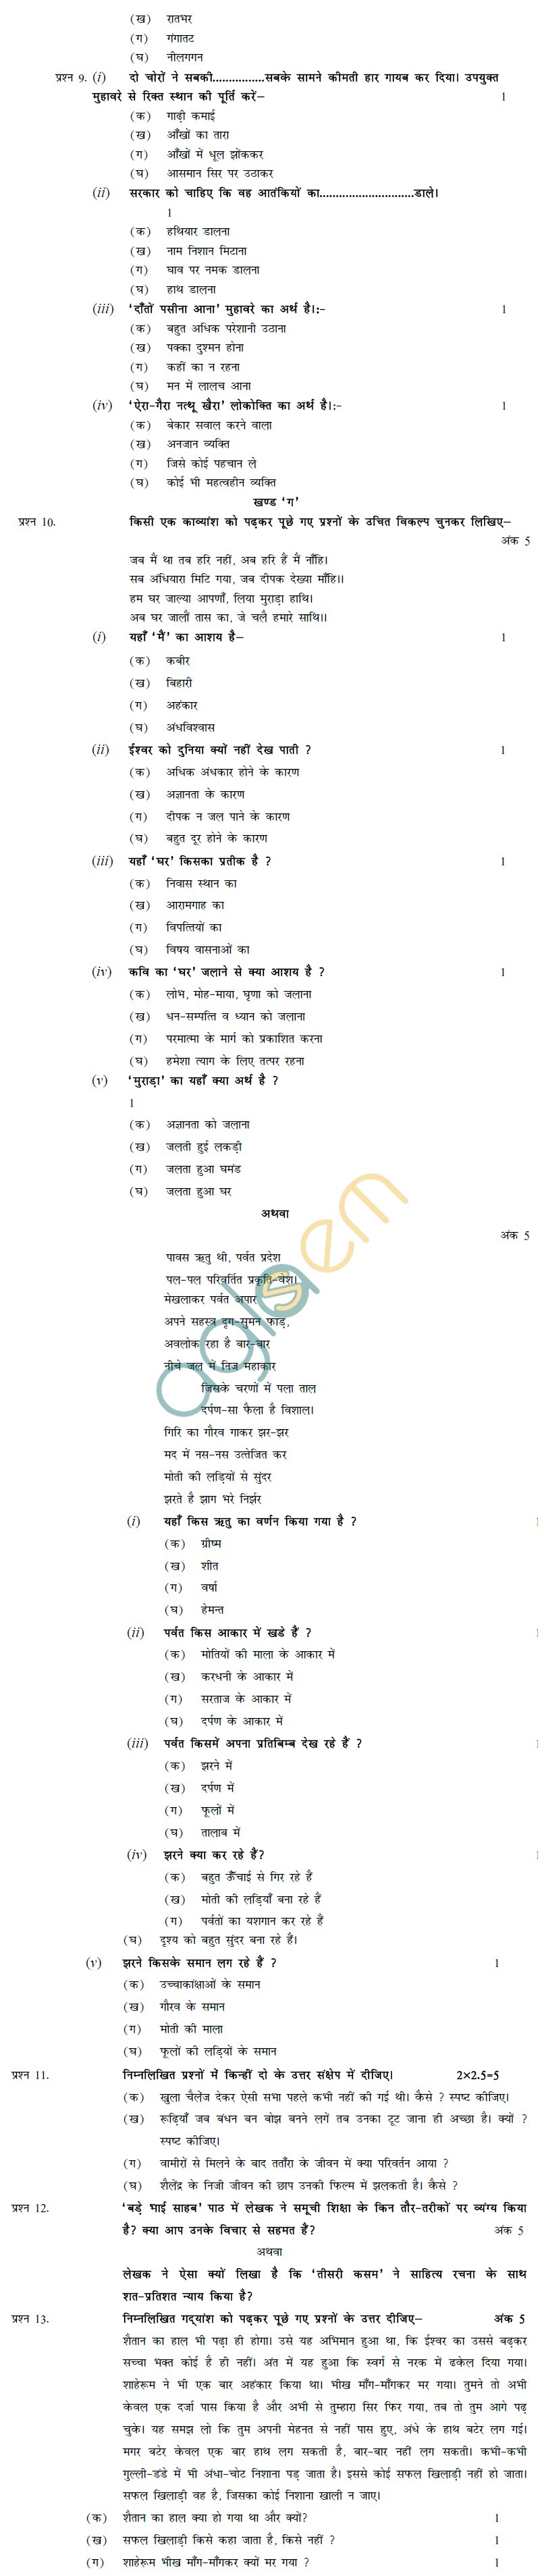 Cbse Adda Science 2016 Board Question Paper For Class 10 Auto Mazda Understanding Wiring Diagram Worksheet Pdfsrcom Sample Papers Sa1 Hindi Course B 2014